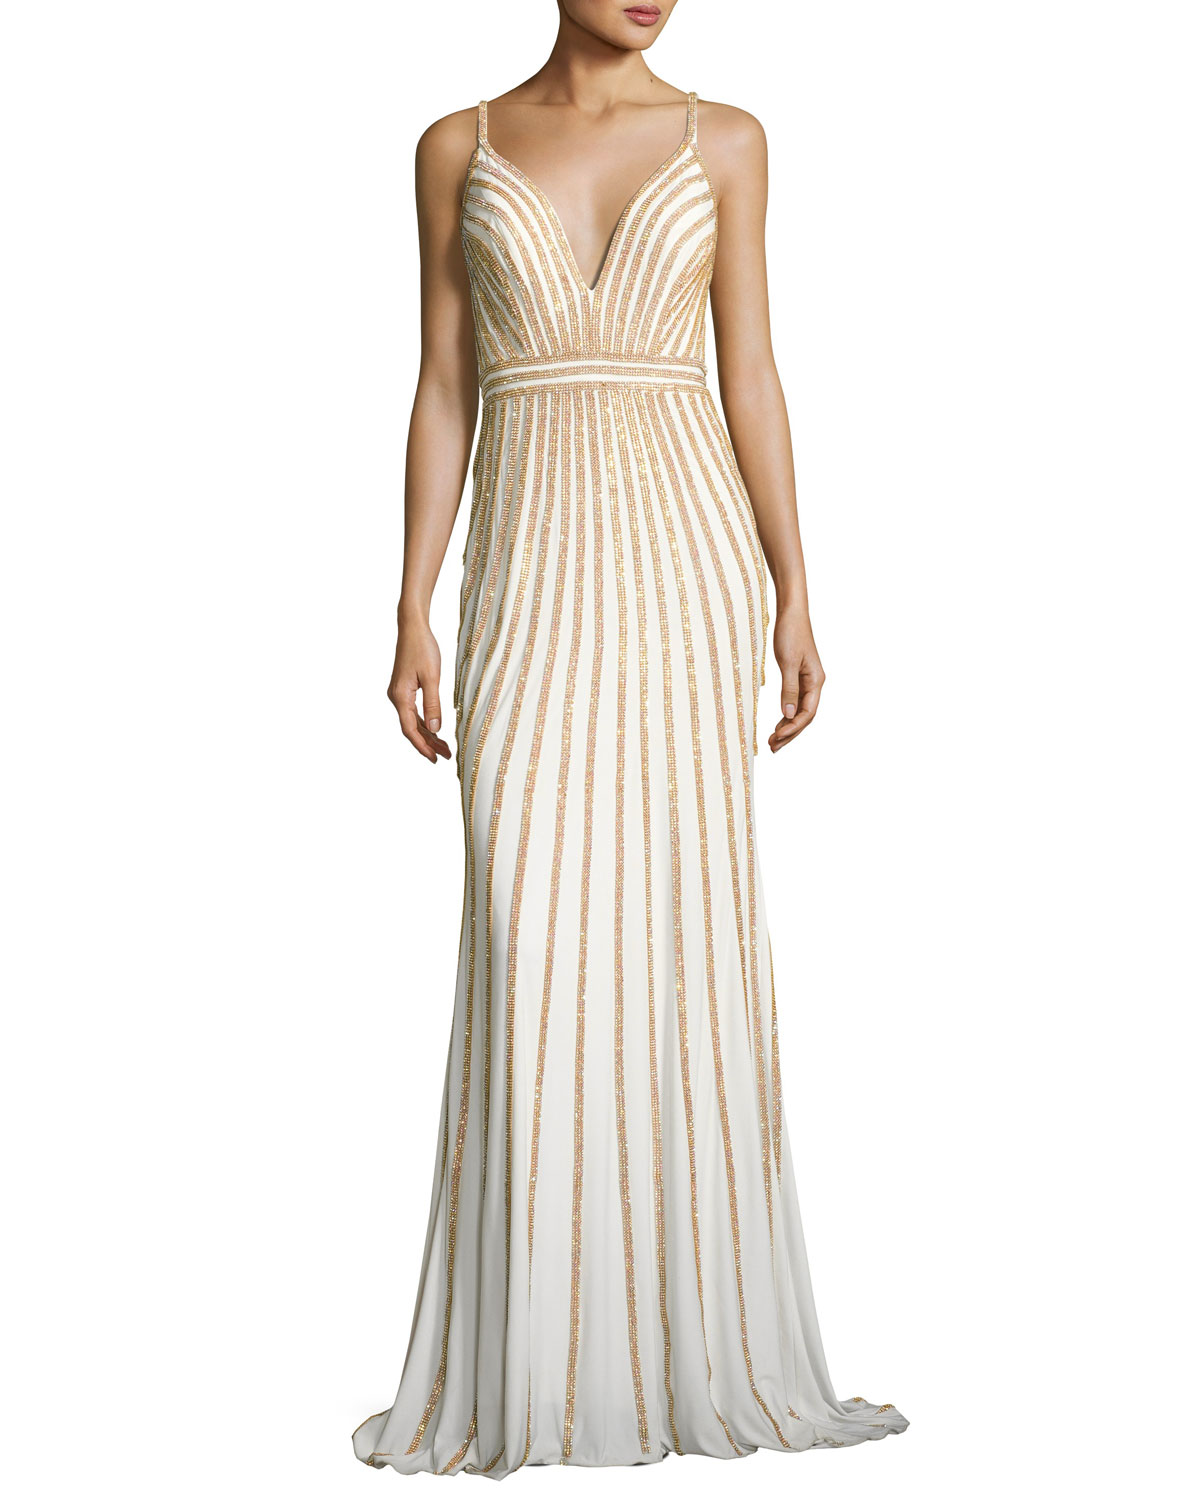 Jovani Sleeveless Beaded Evening Gown, White/Gold | Neiman Marcus